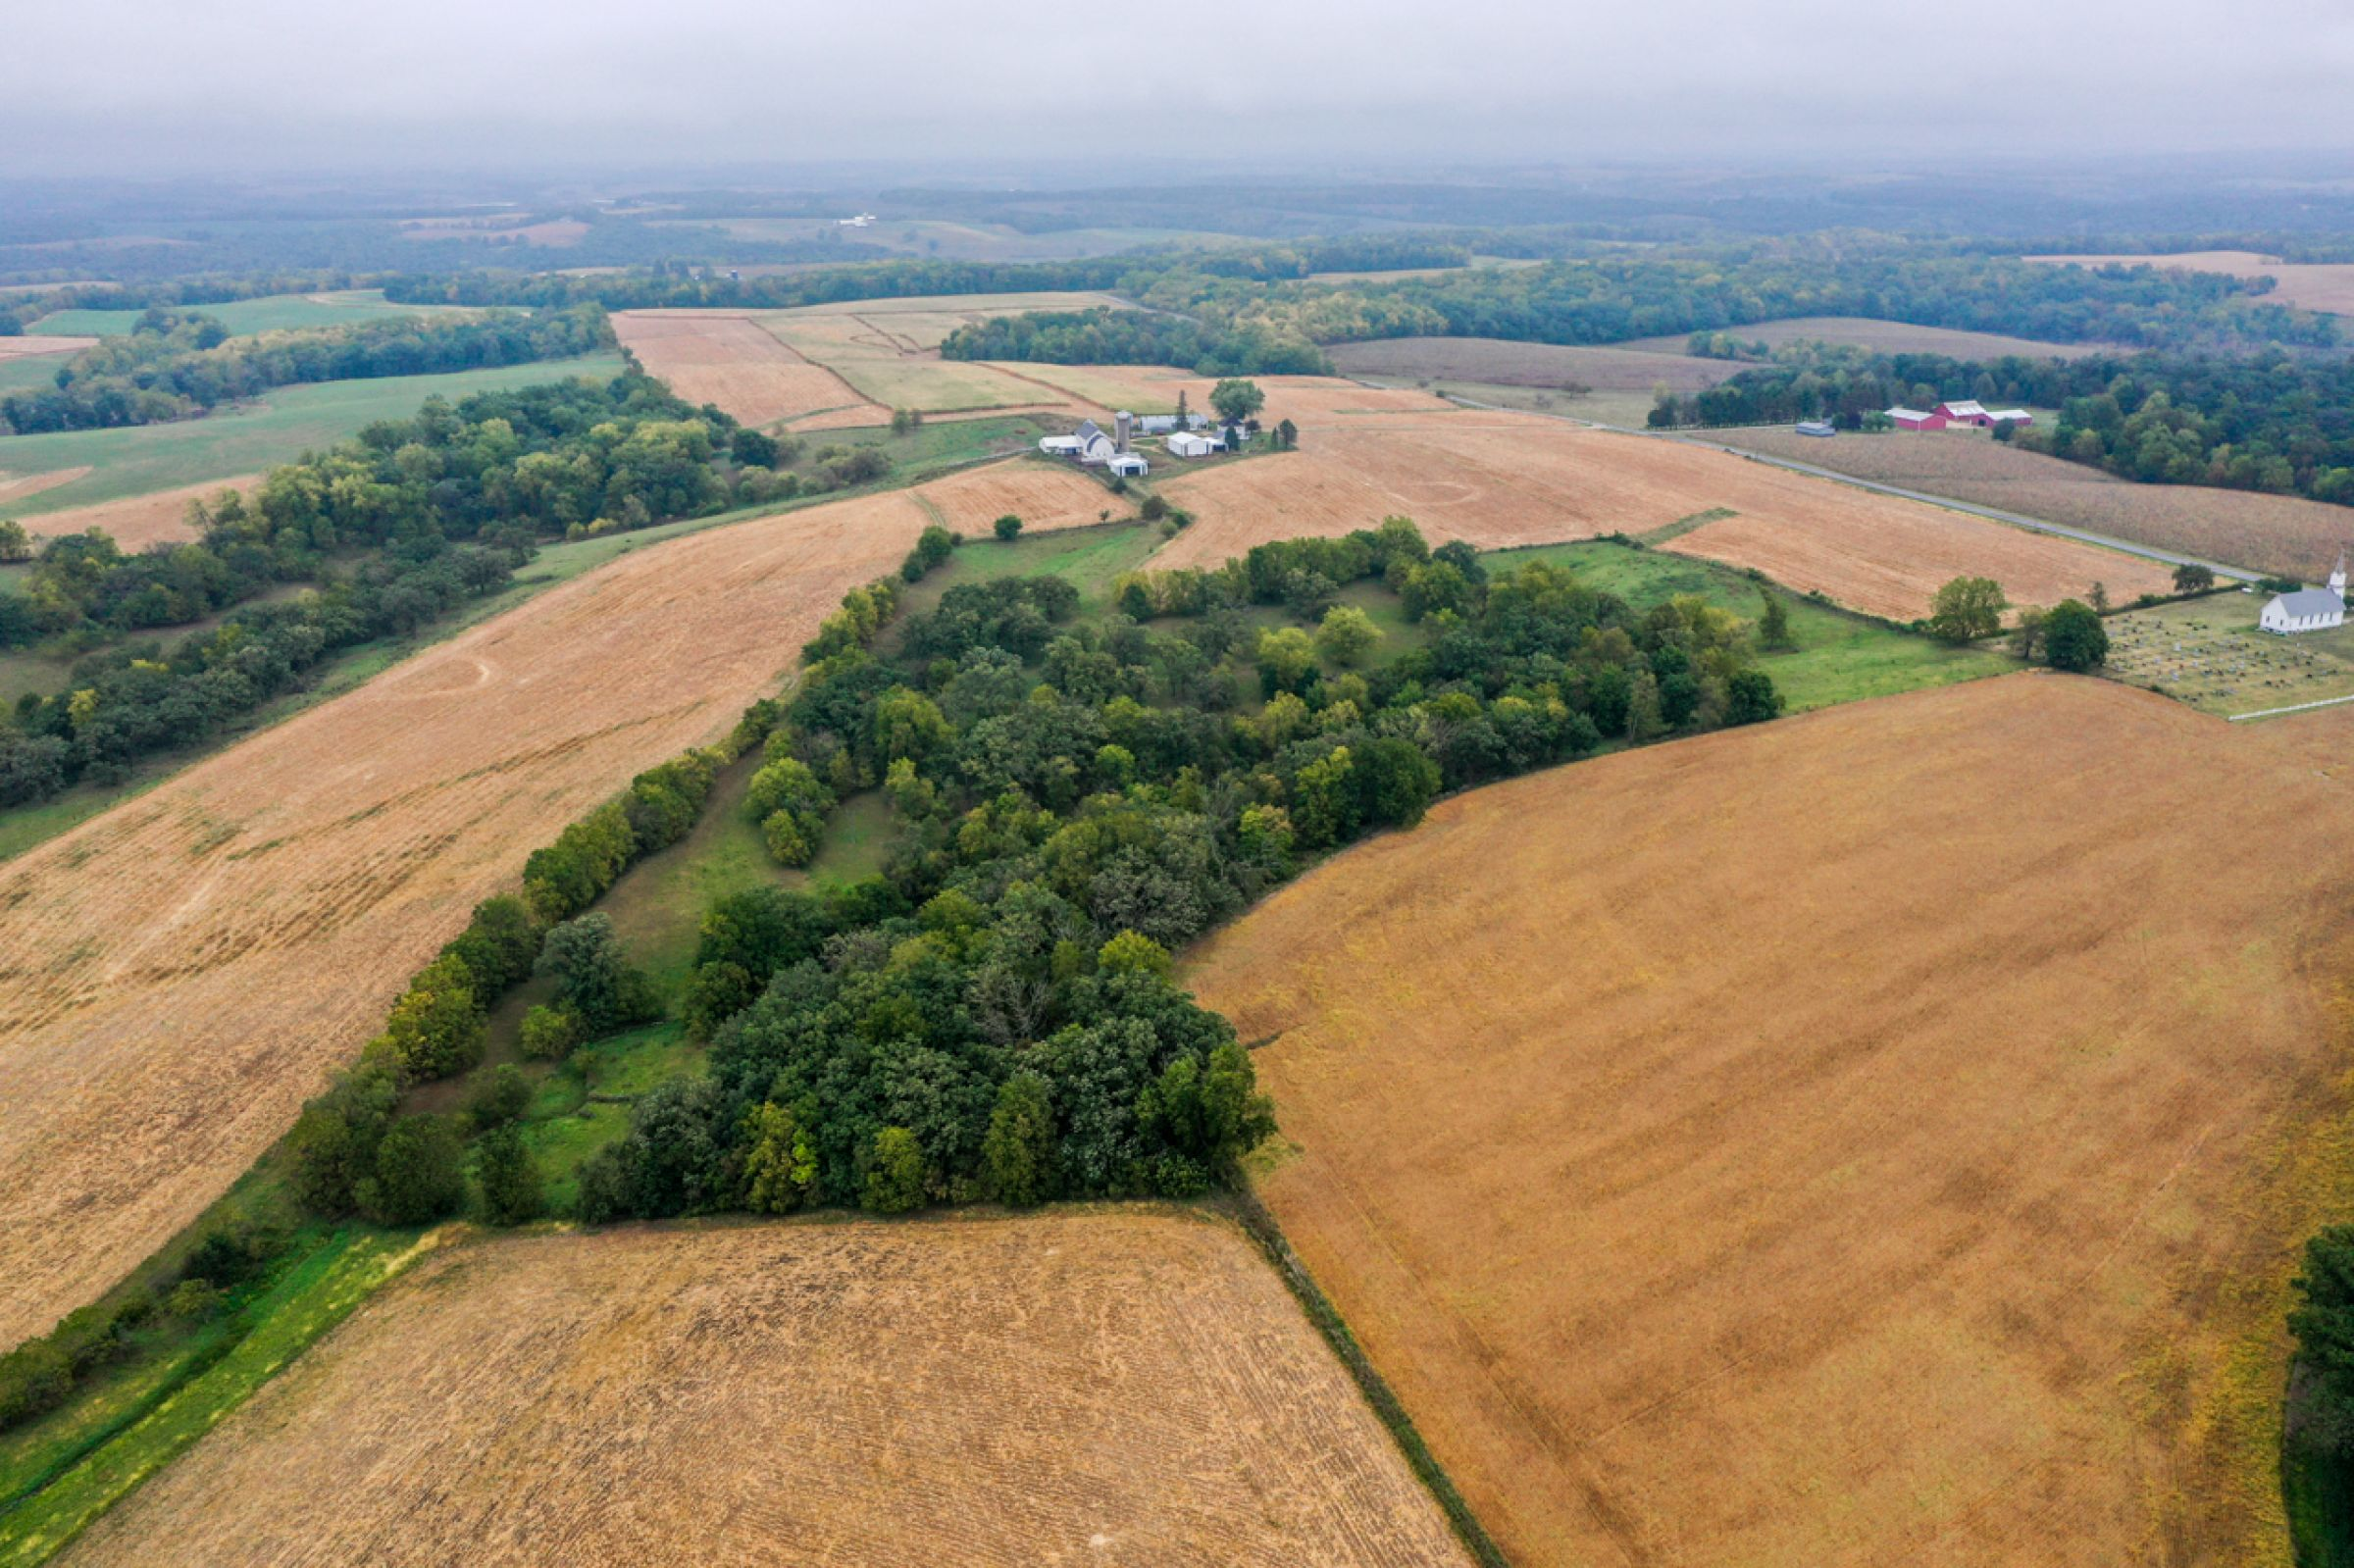 auctions-land-lafayette-county-wisconsin-138-acres-listing-number-15758-0-2021-09-21-155930.jpg